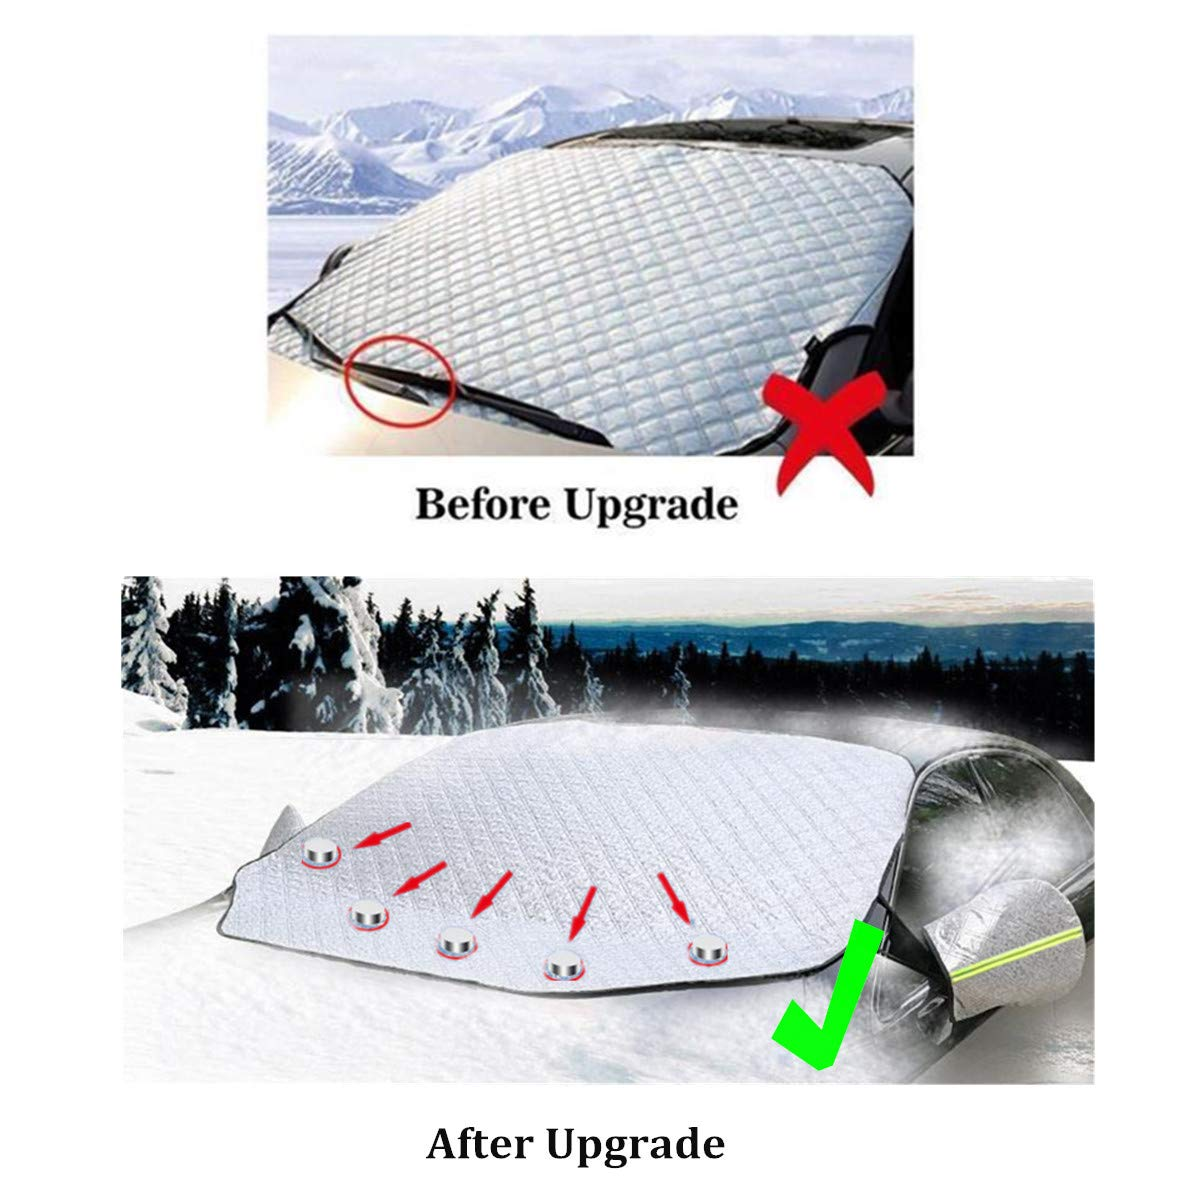 Mirror Cover FEZZ Car Windscreen Cover Wind Auto Winter Vehicle Snow Cover Sun Window Protector Ice Frost Windshield Magnetic Silver 157x126cm for SUV Truck